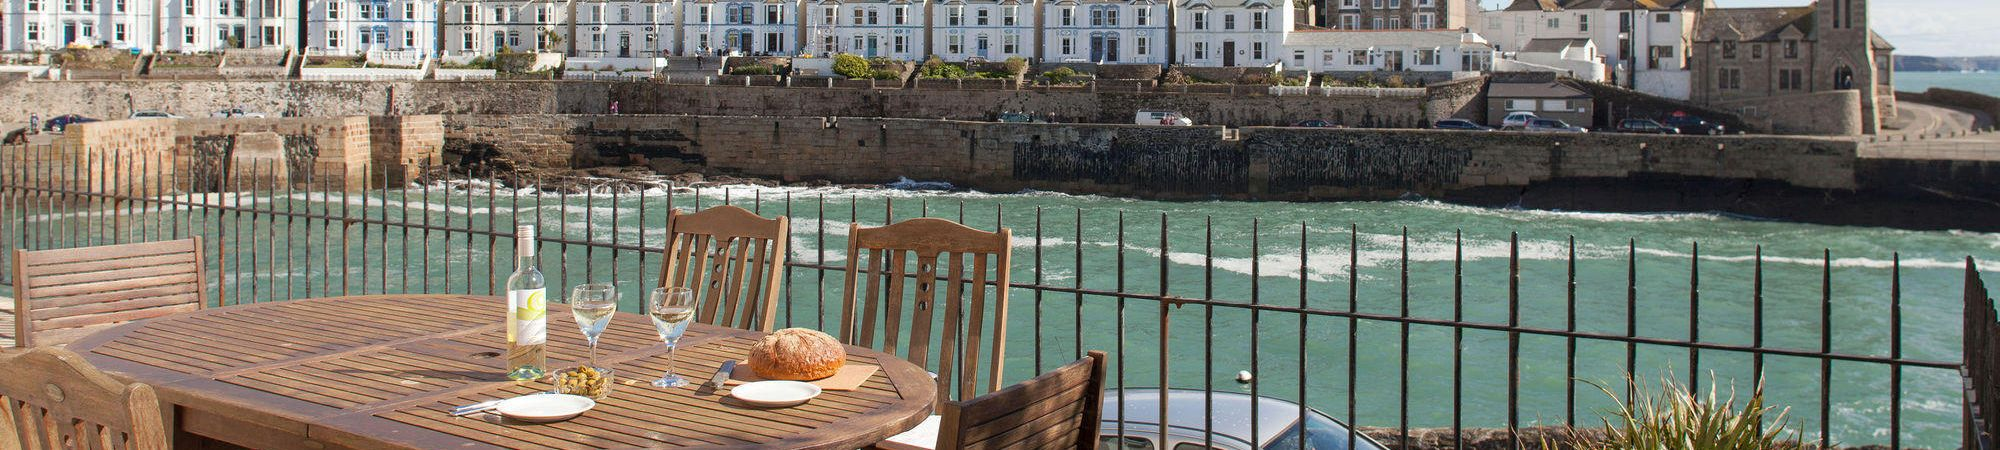 Cordelia House - Porthleven Holiday Cottages